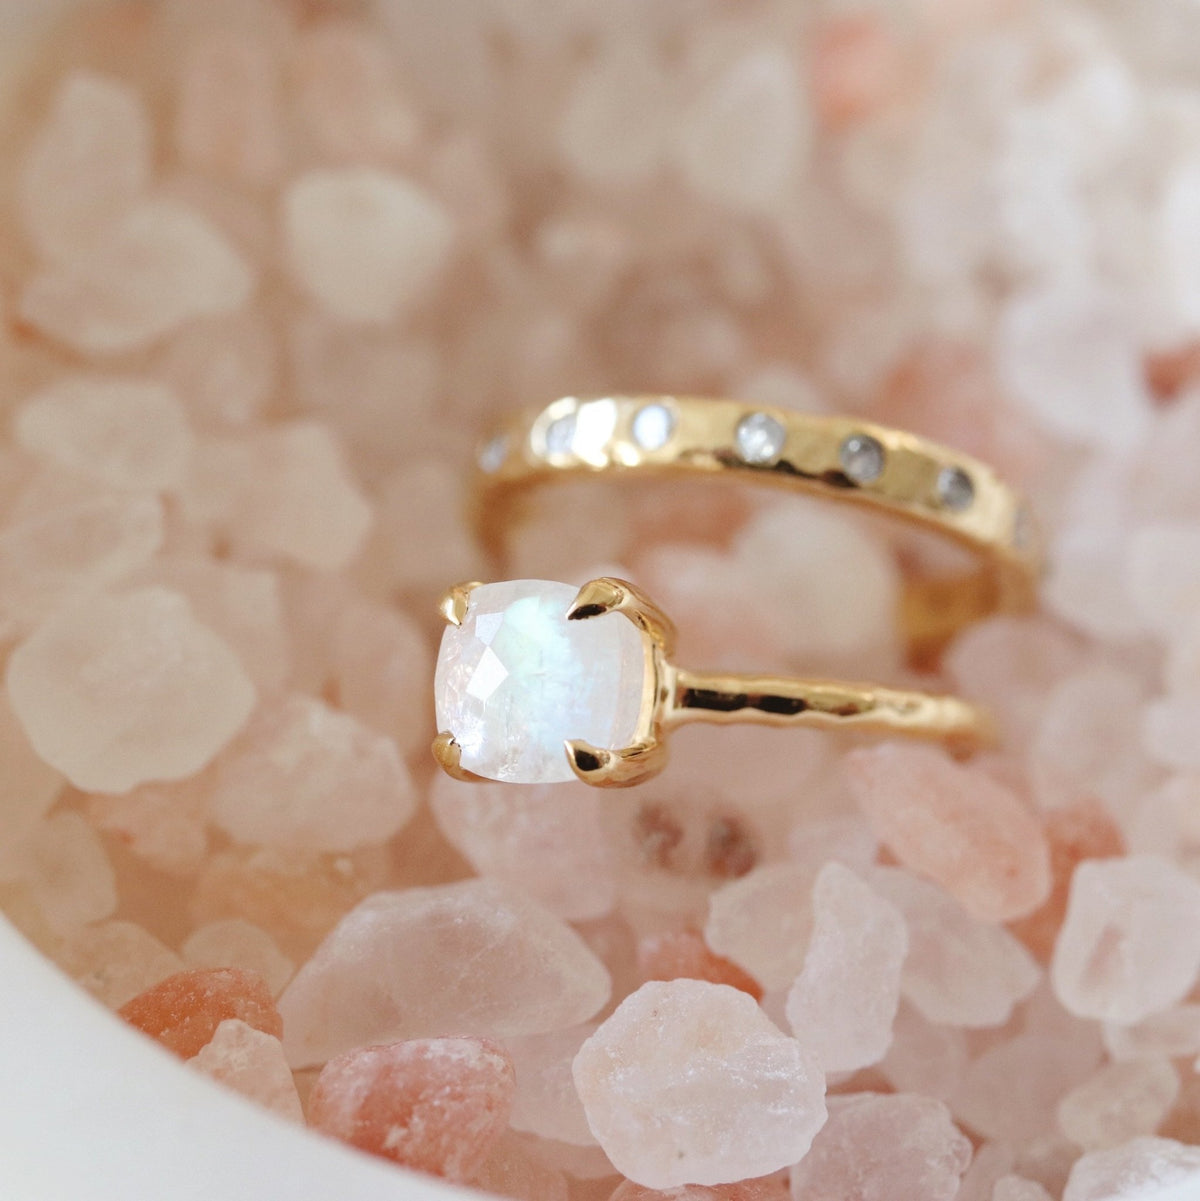 MINI PROTECT RING RAINBOW MOONSTONE & GOLD - SO PRETTY CARA COTTER